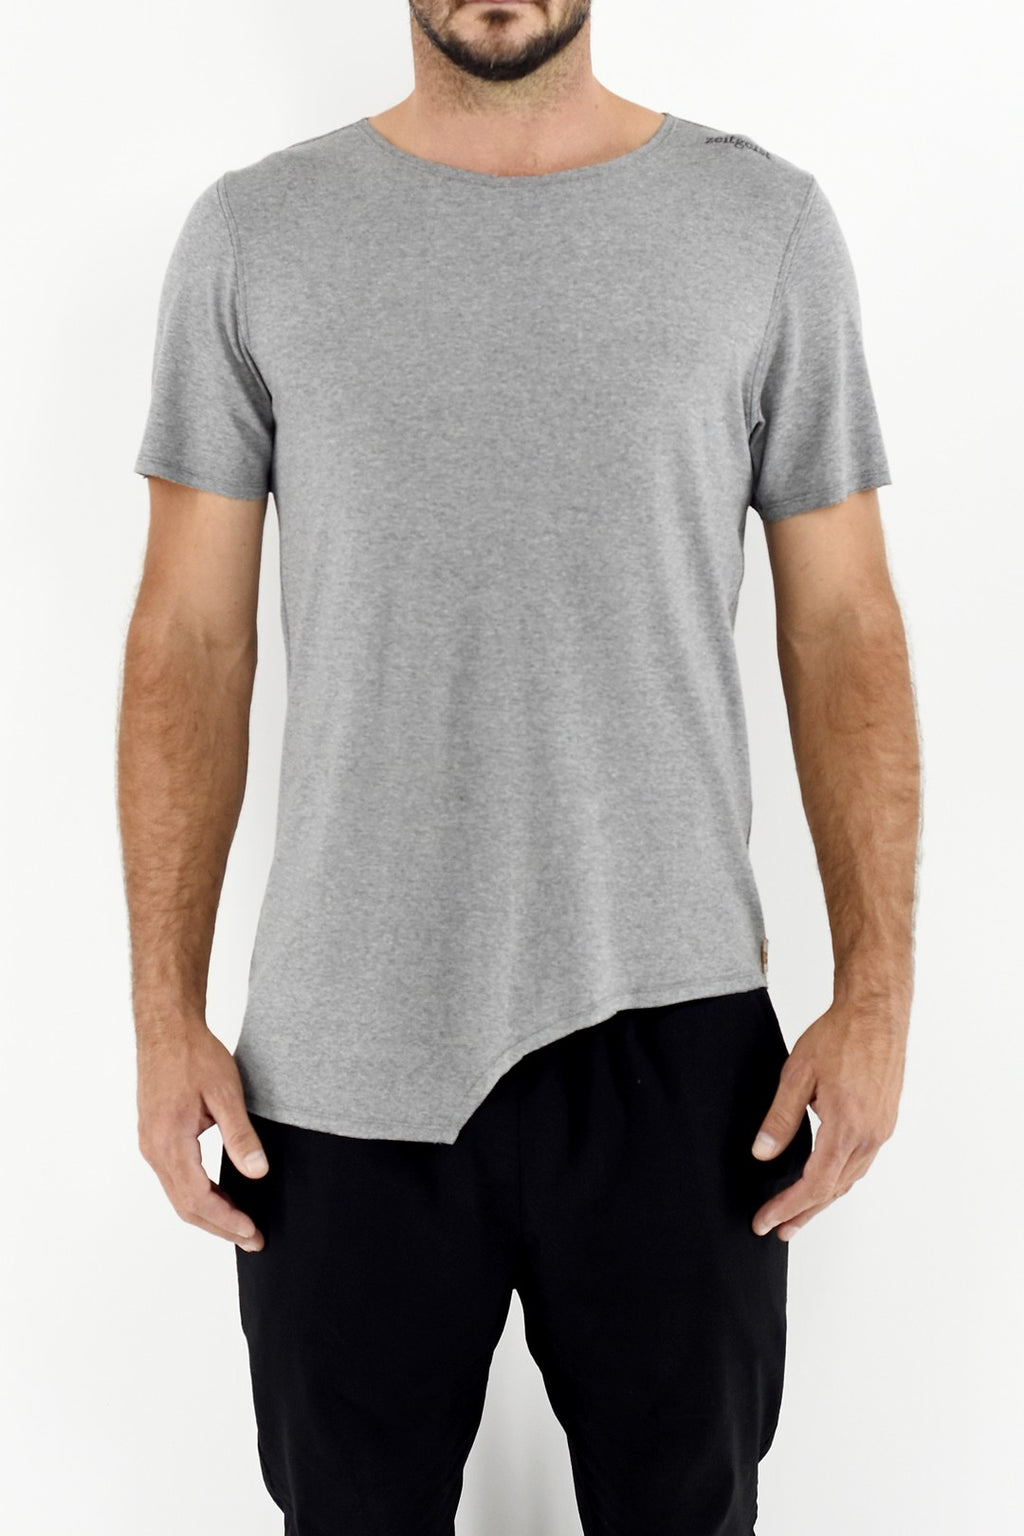 Mens Grey Melange Asymetric hem T with embroidery ZG5320